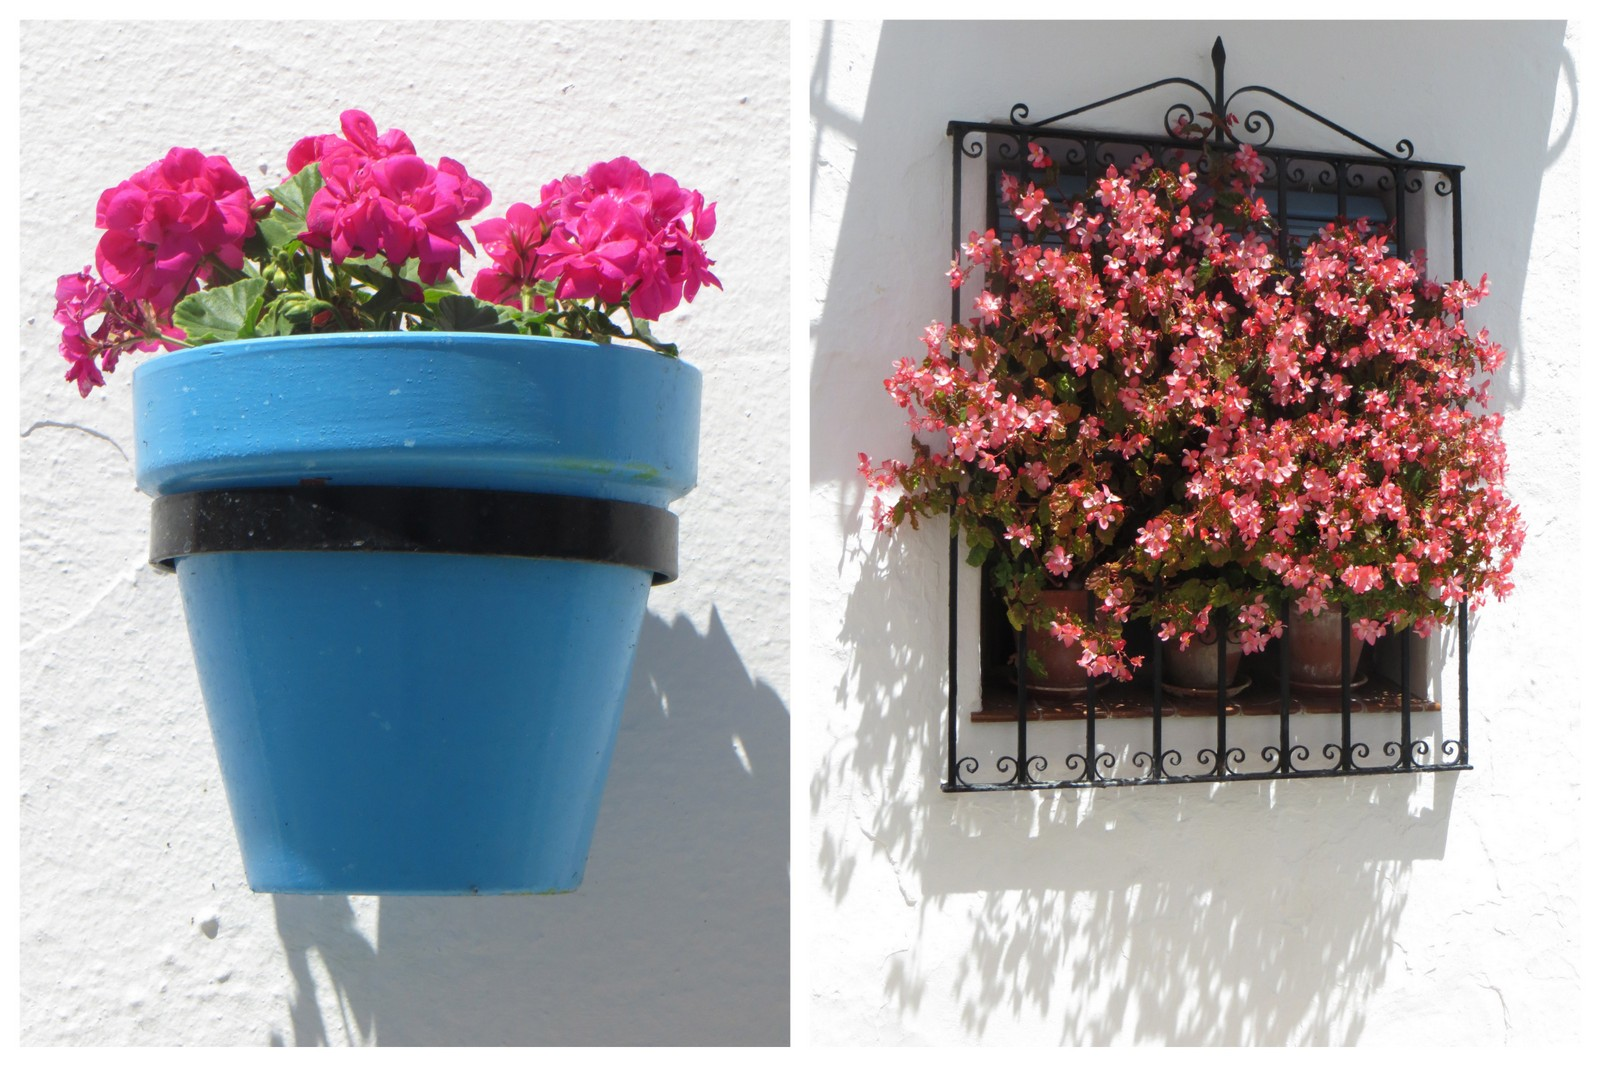 windows of Mijas